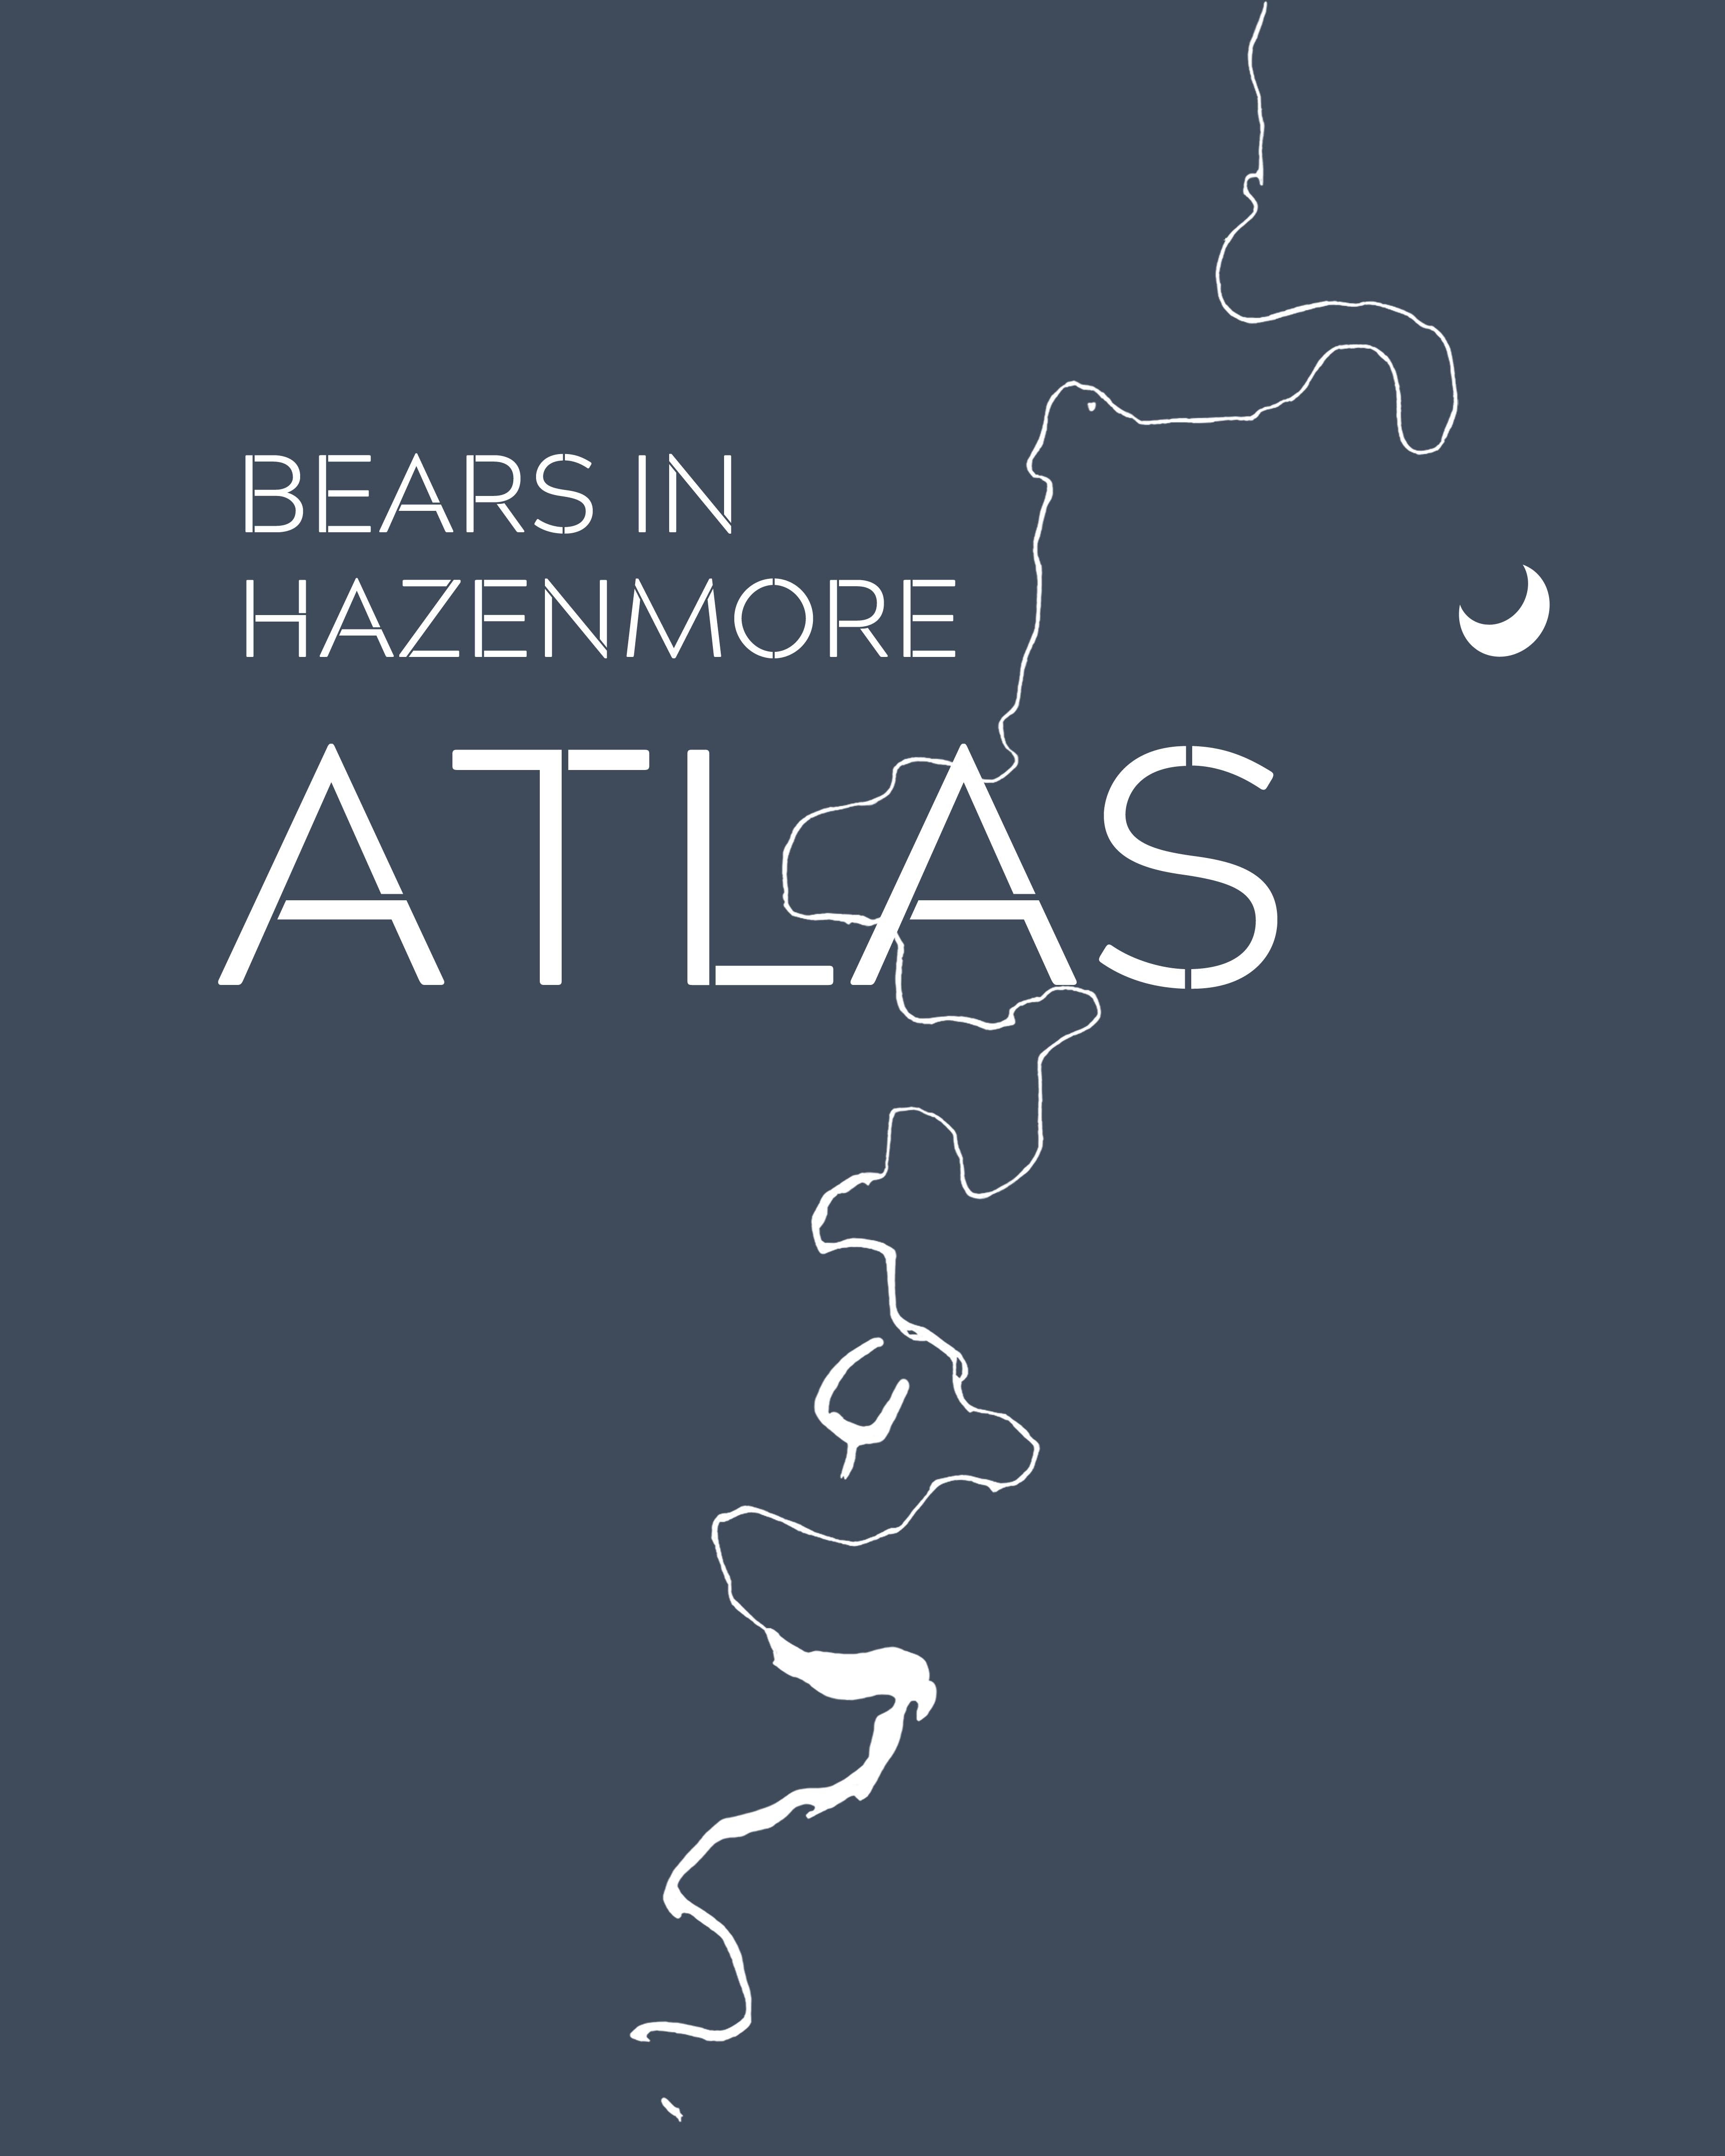 BIH Atlas Album Release Shirt Design